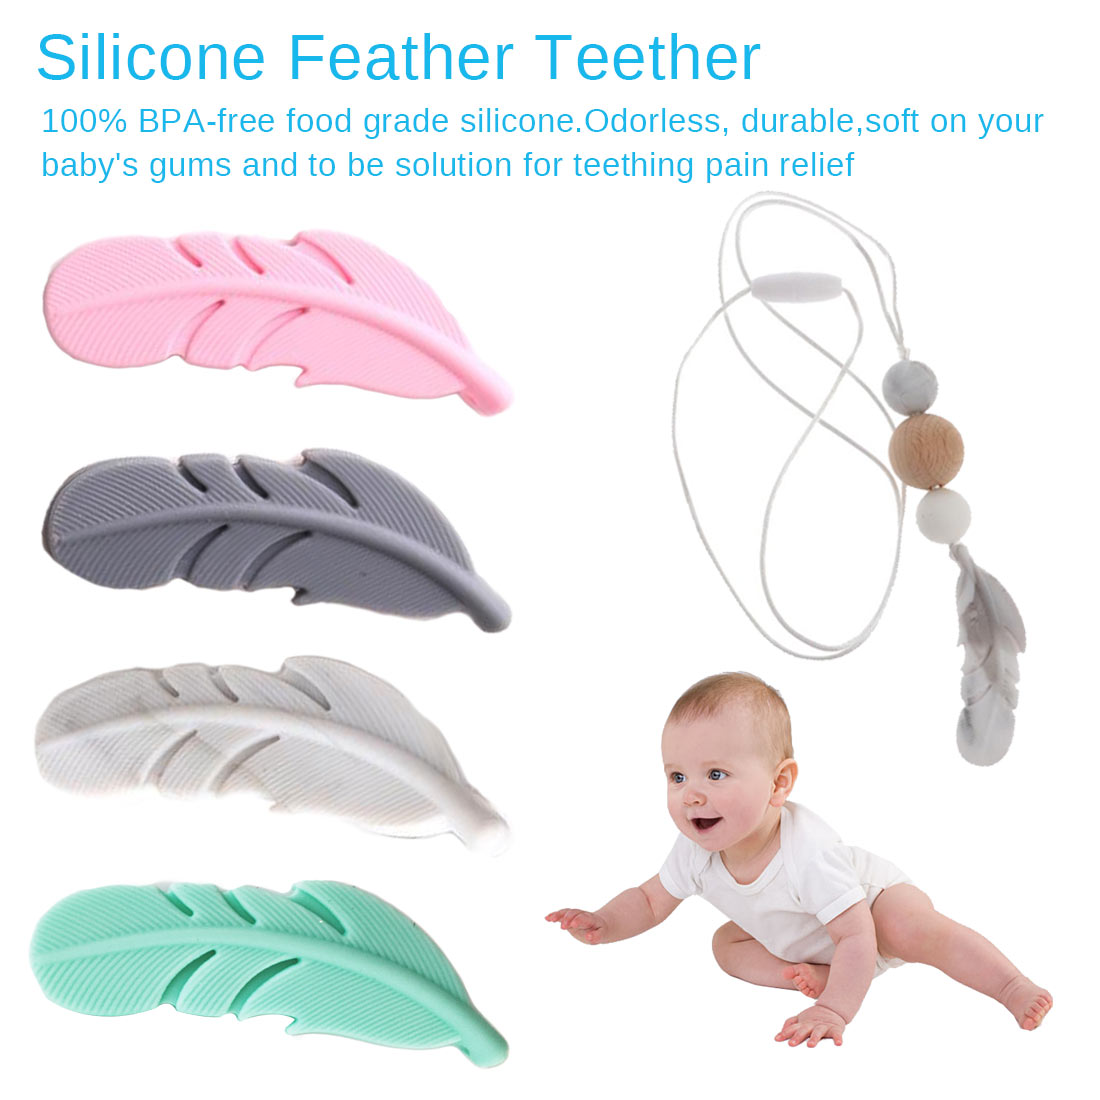 1 Pieces Silicone Feather Teether Pendant Food Grade Silicone Toys For Baby Chew Pacifier Clips Accessories BPA FREE